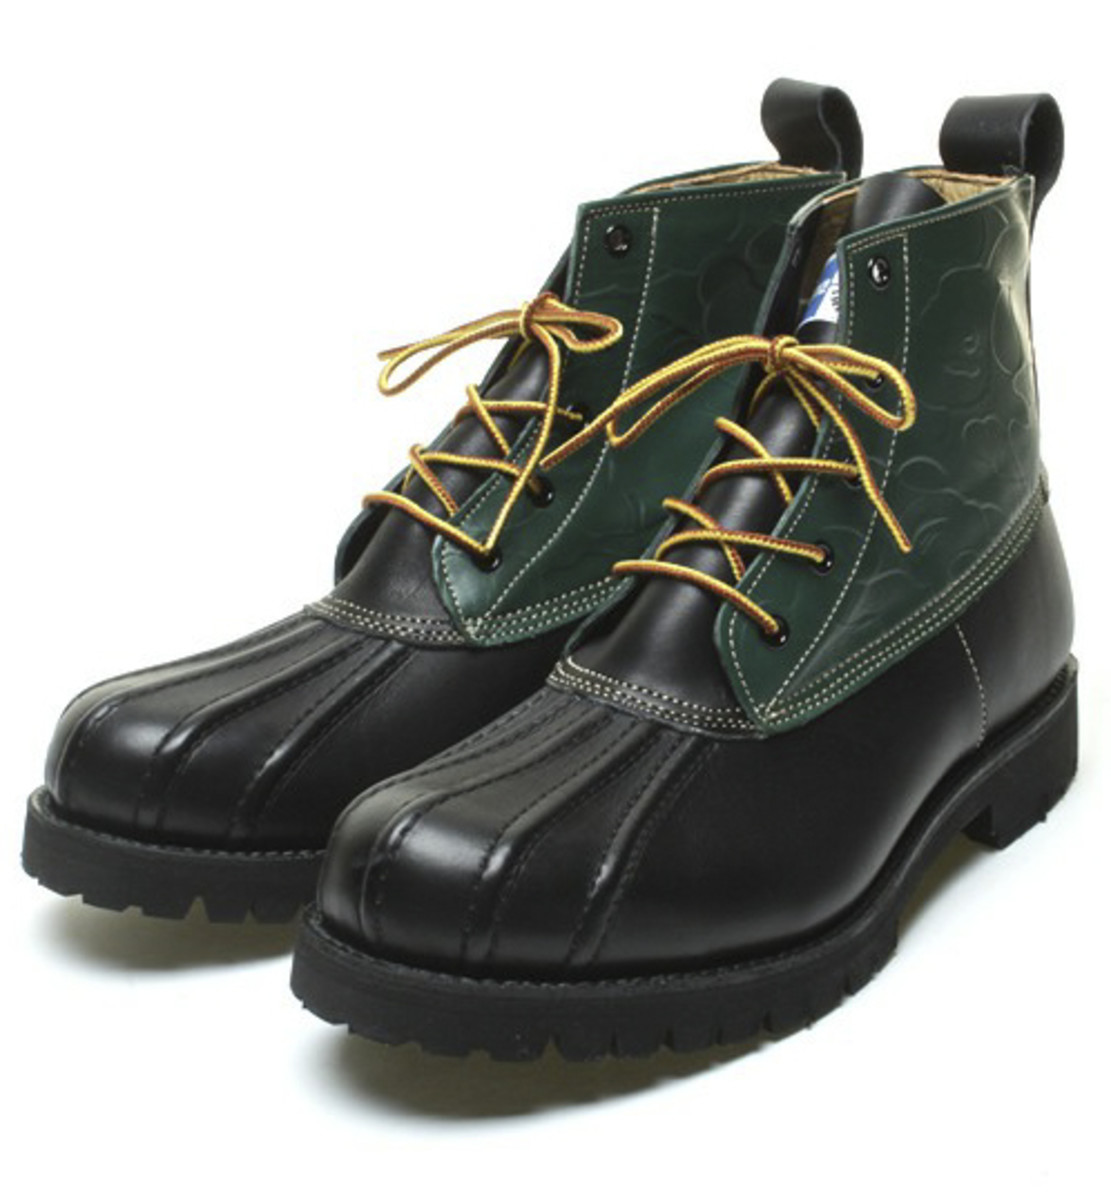 a-bathing-ape-ll-soldier-boots-01